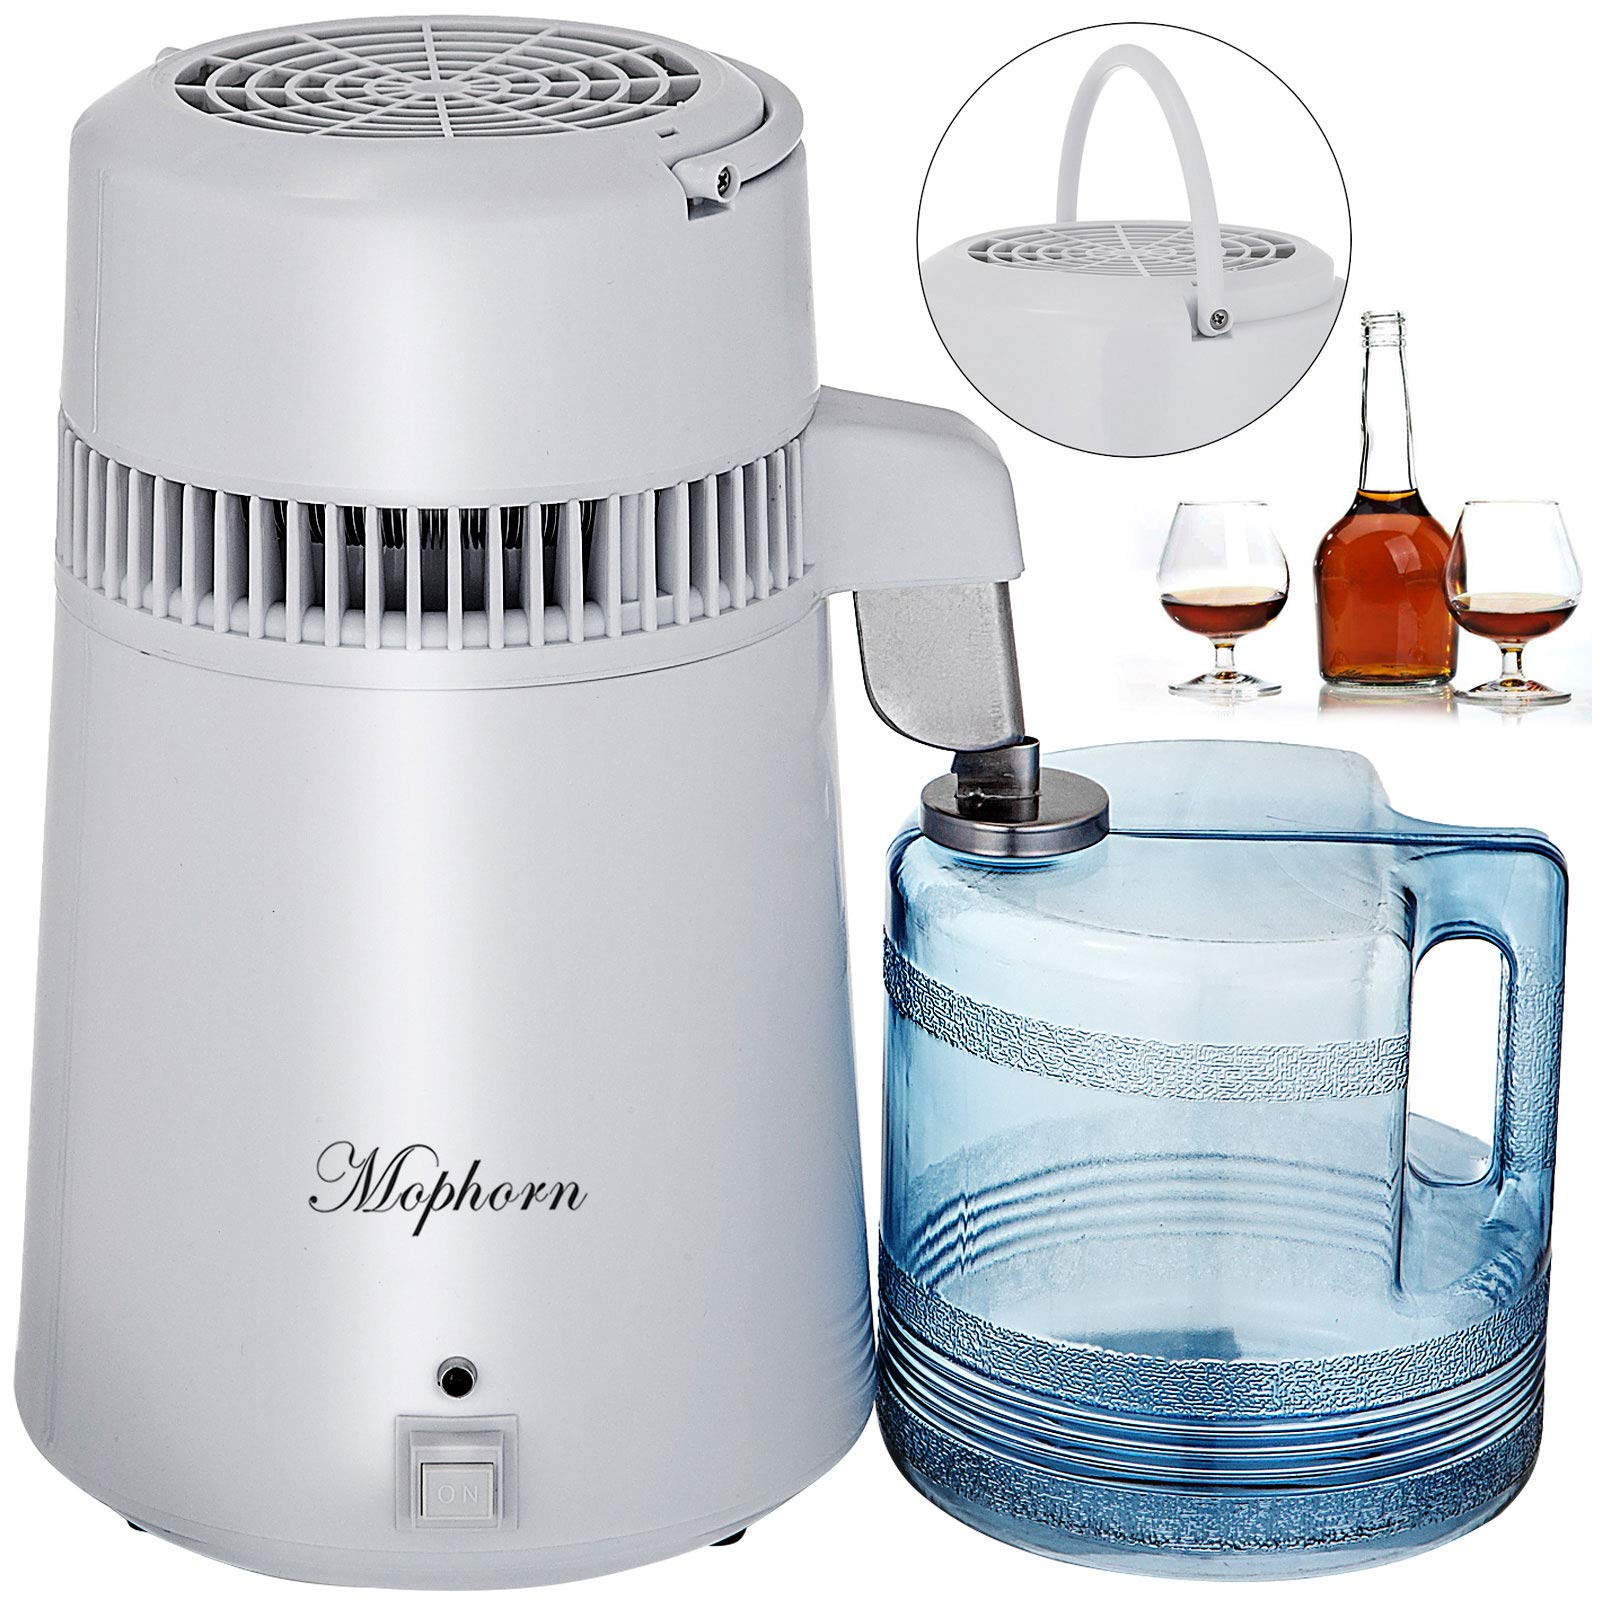 Mophorn Pure Water Distiller 750W, Purifier Filter Fully Upgraded with Handle 1.1 Gal /4L, BPA Free Container, Perfect for Home Use, White